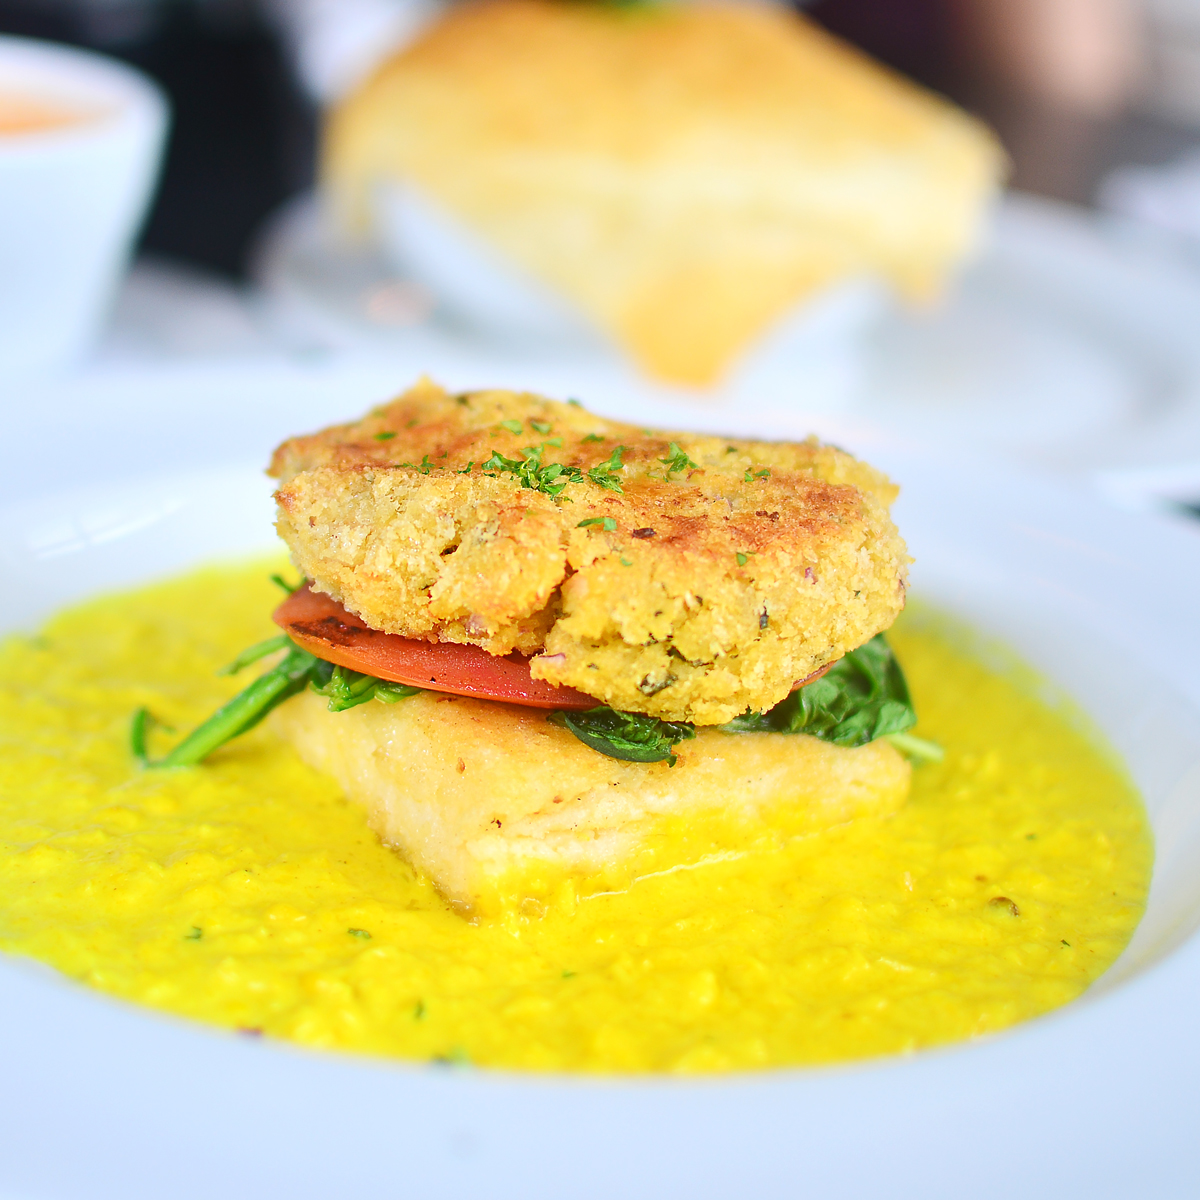 Soho South Cafe's Salmon Croquette